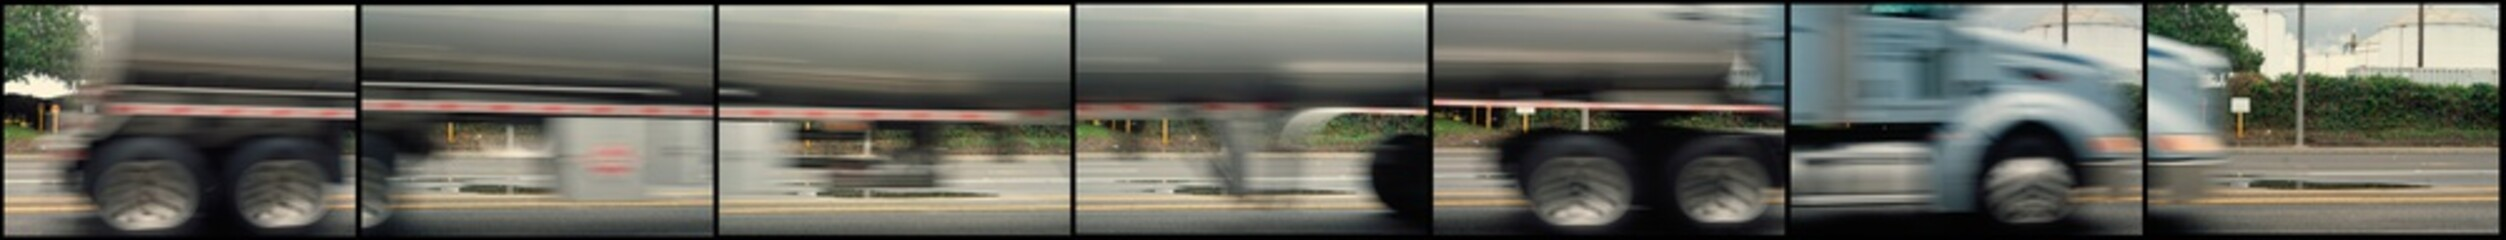 Seven blurred pictures of a truck assembled together as it quickly passes by.